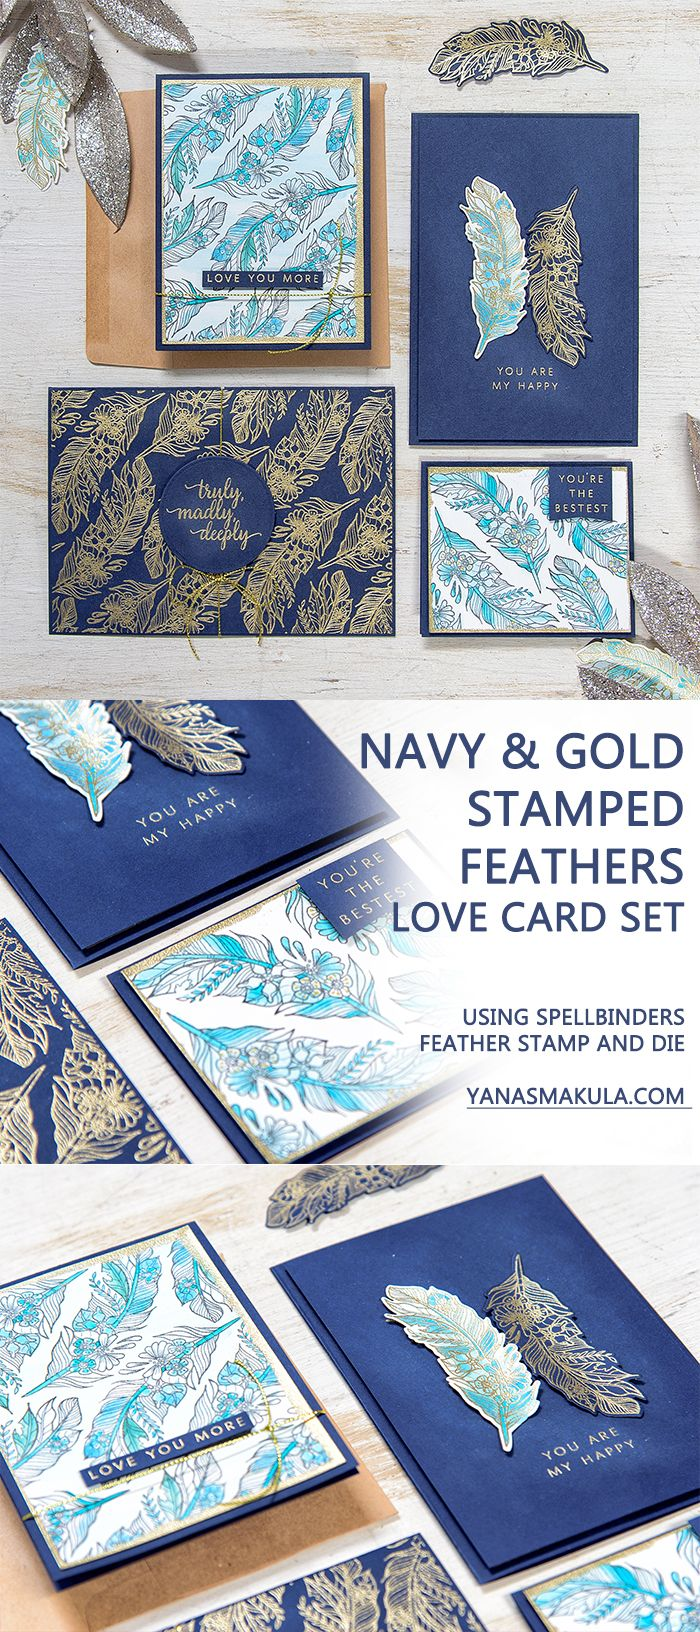 Navy & Gold Stamped & Watercolored Feathers Love Card Set featuring Stephanie Low Cling Feather Stamp & Die set. Find video tutorial and more info on my blog http://www.yanasmakula.com/?p=56605